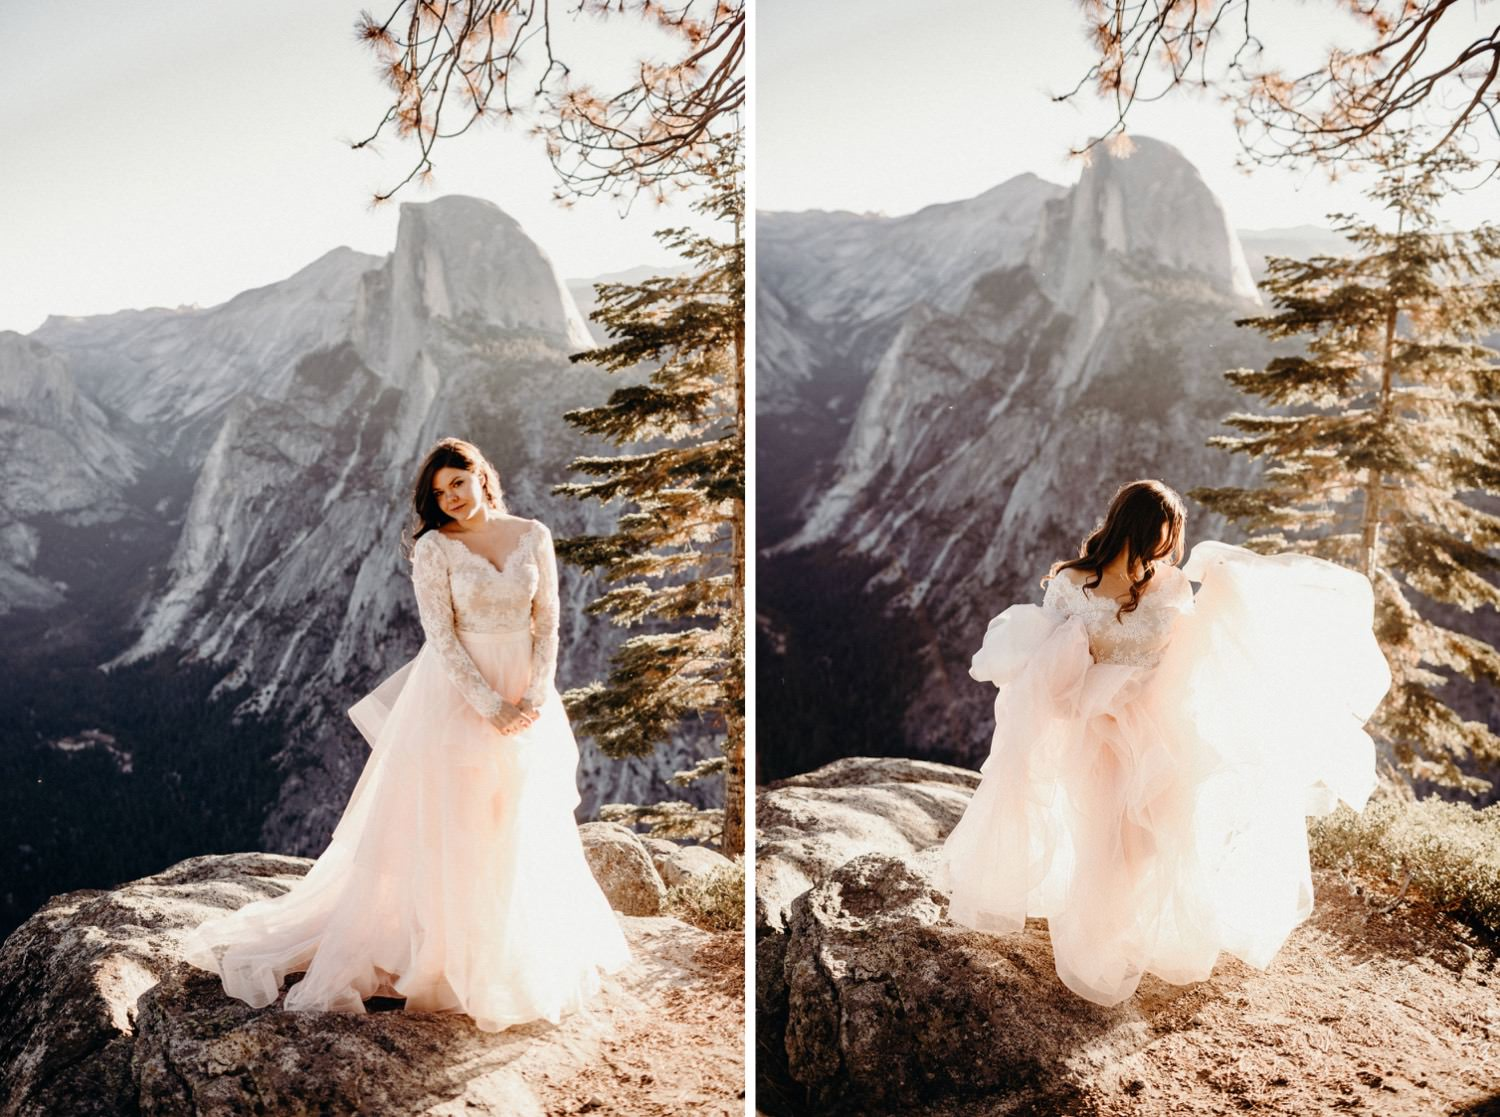 12_alex+matt-wedding-98_alex+matt-wedding-96_park_national_elopement_wedding_yosemite_intimate.jpg